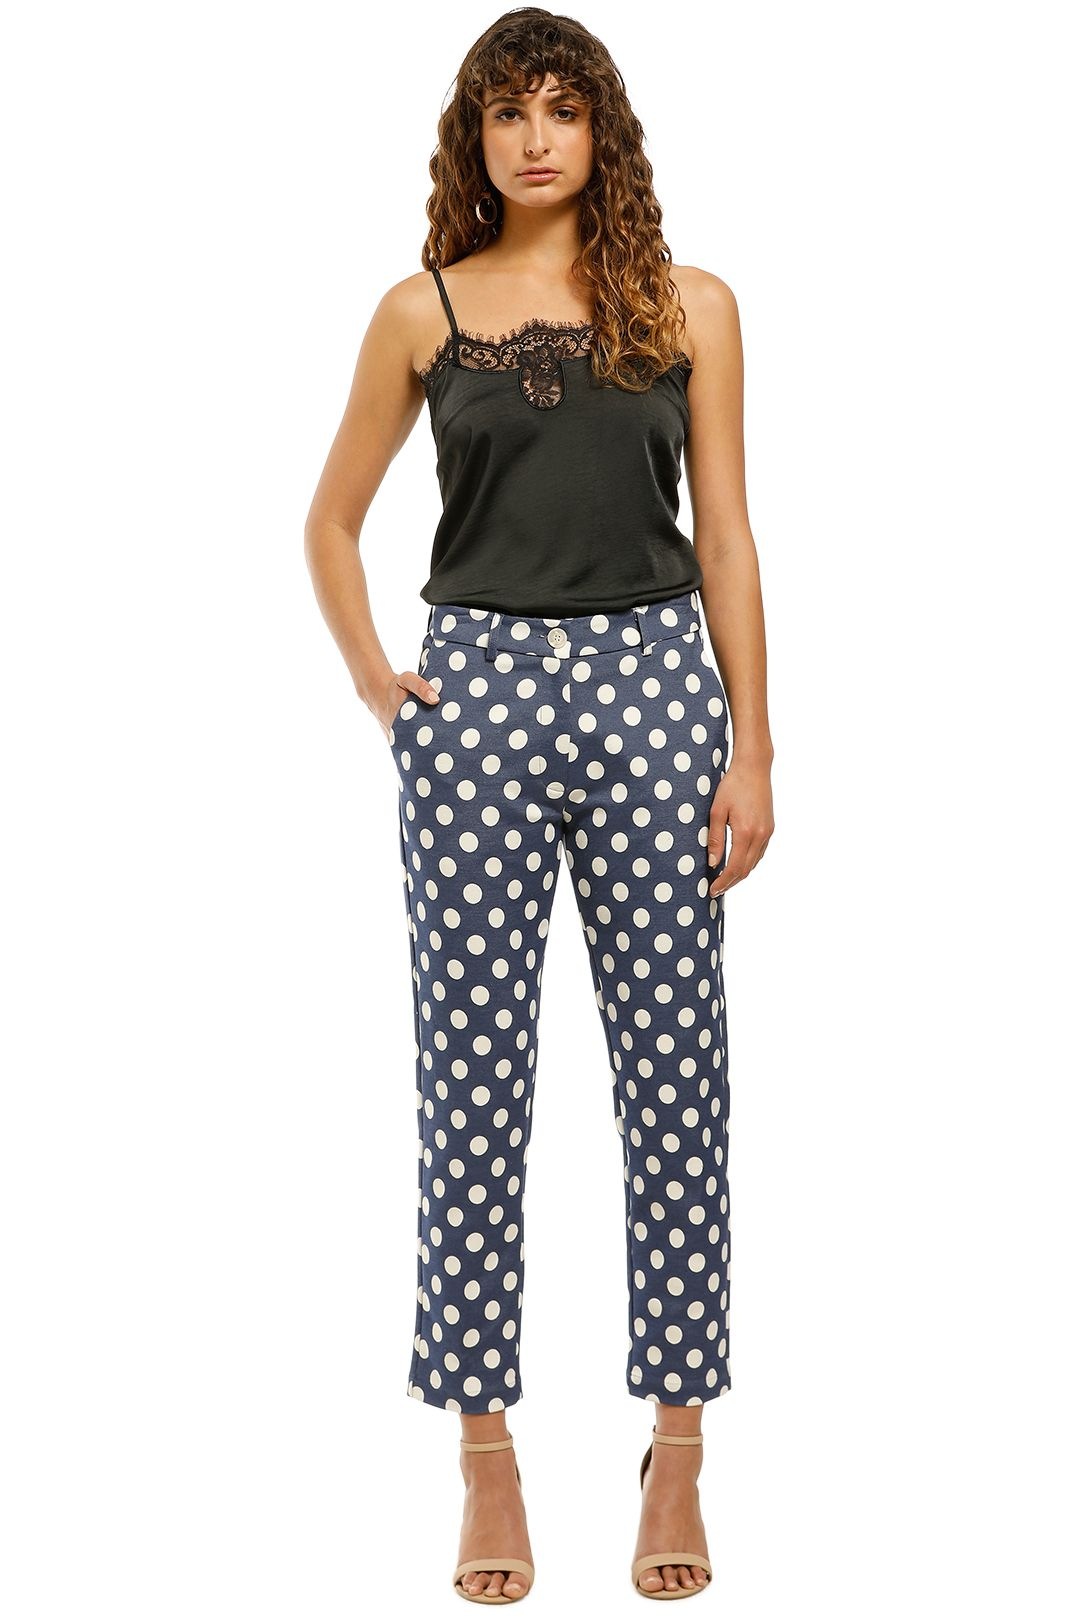 Cooper-by-Trelise-Cooper-I-Spot-You-Pant-Blue-Cream-Spot-Front